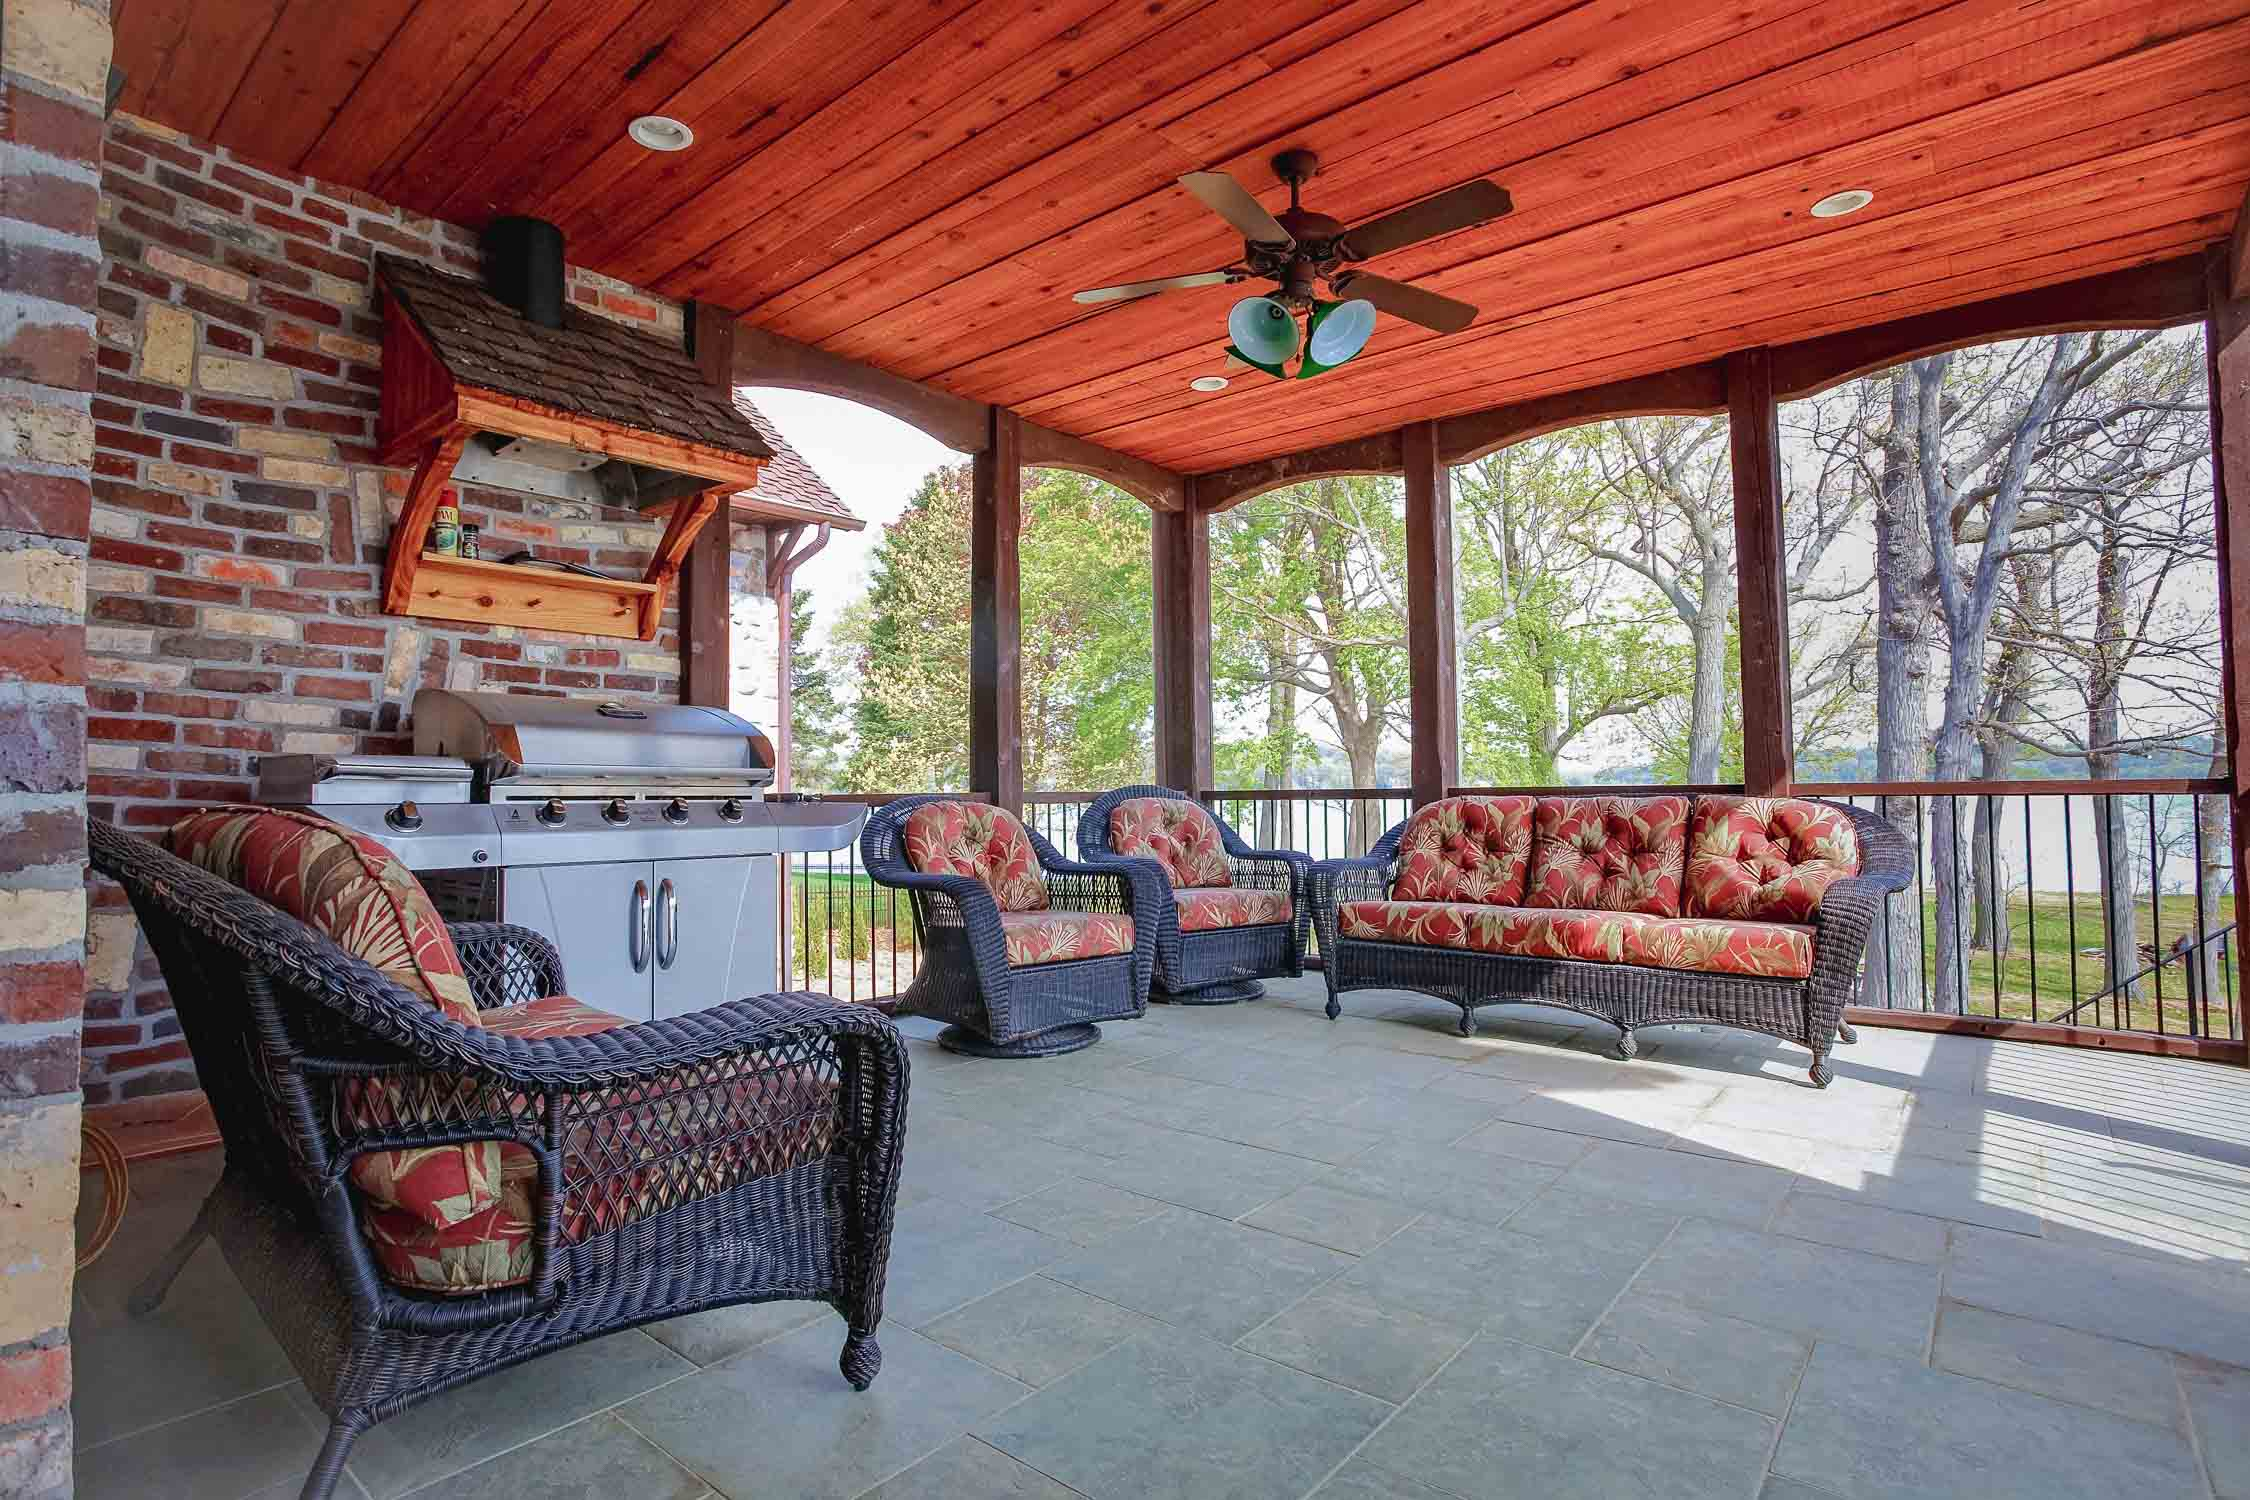 - This screened porch includes a grilling station, with a vent hood, for sheltered grilling available rain or shine.